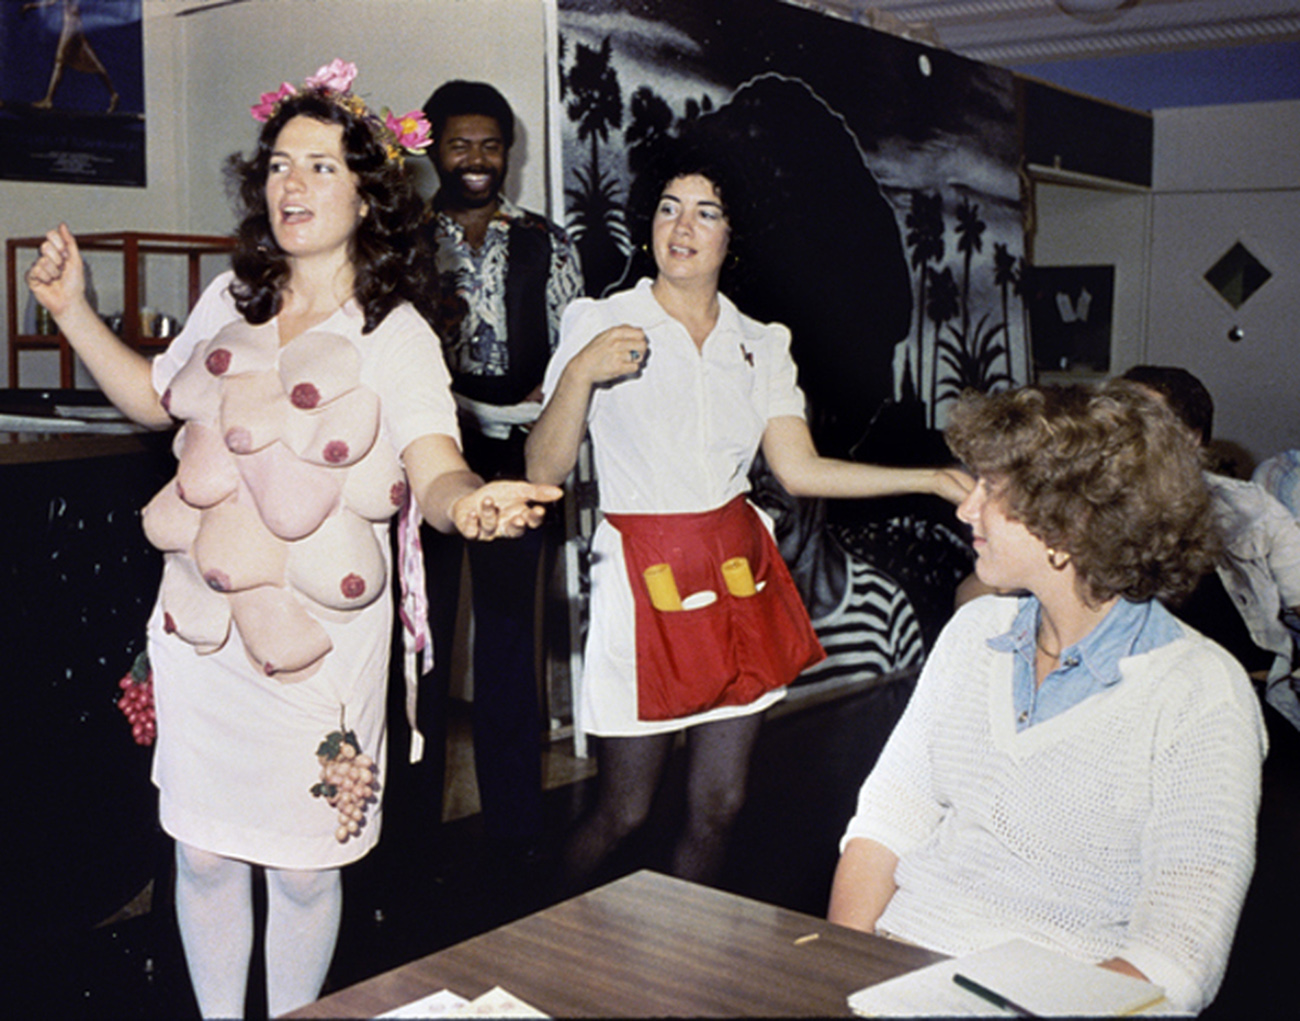 A woman wearing a dress covered in fake breasts and grapes and a woman wearing a white waitress outfit with a red apron gesture and perhaps sing to onlookers standing and sitting at tables.